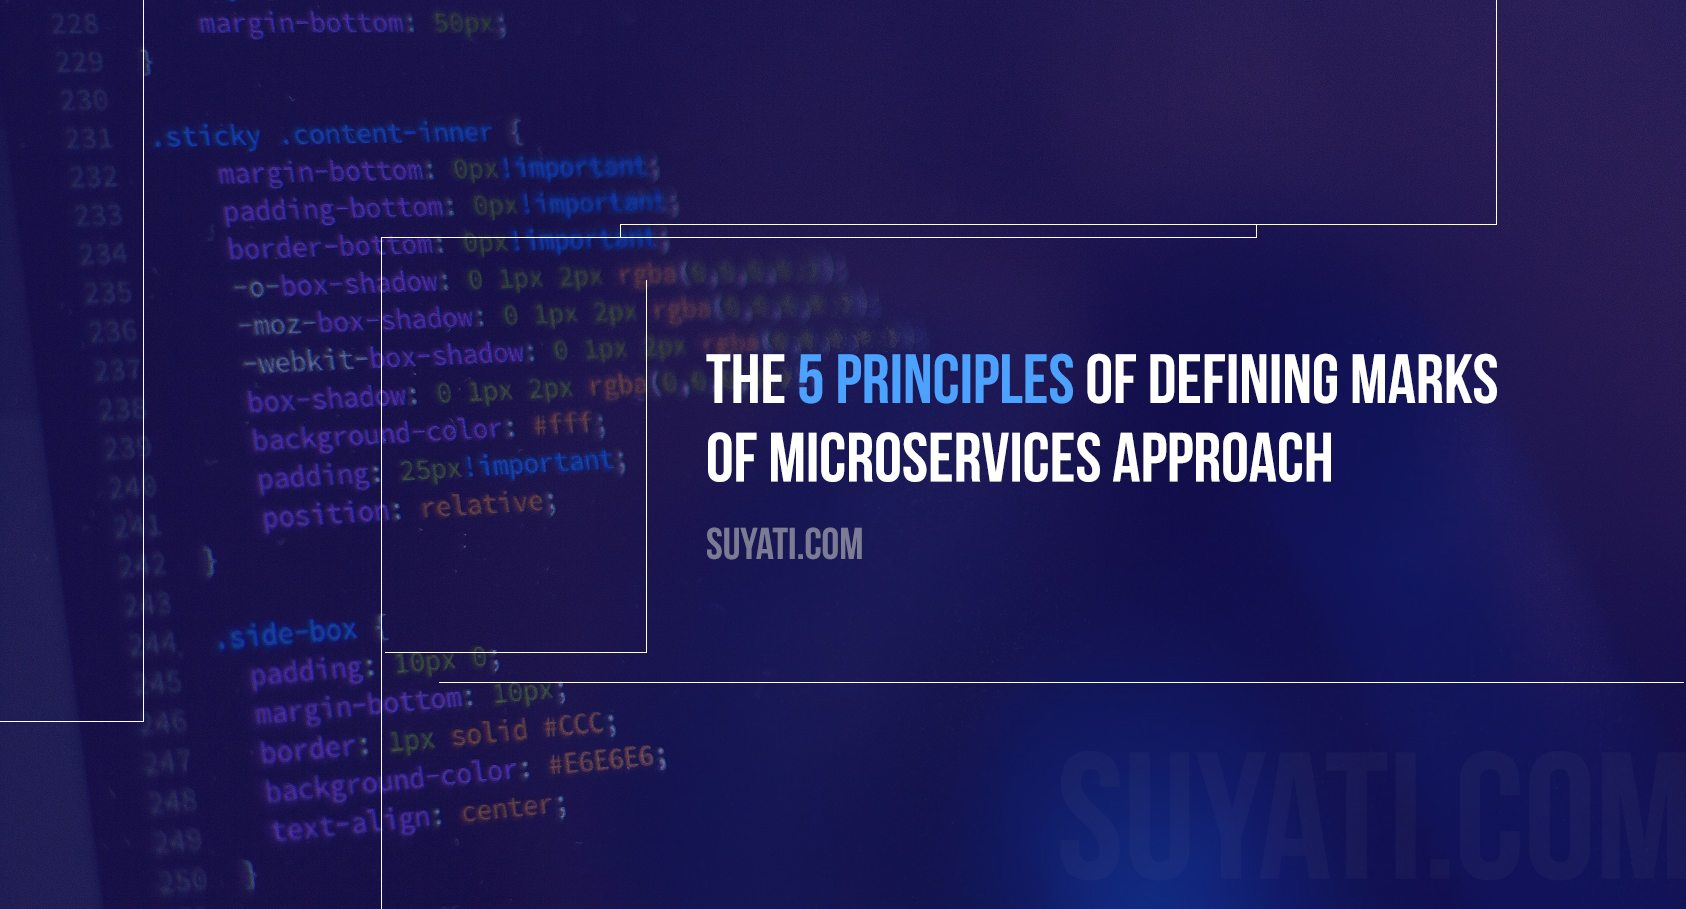 What are the defining marks of microservices approach